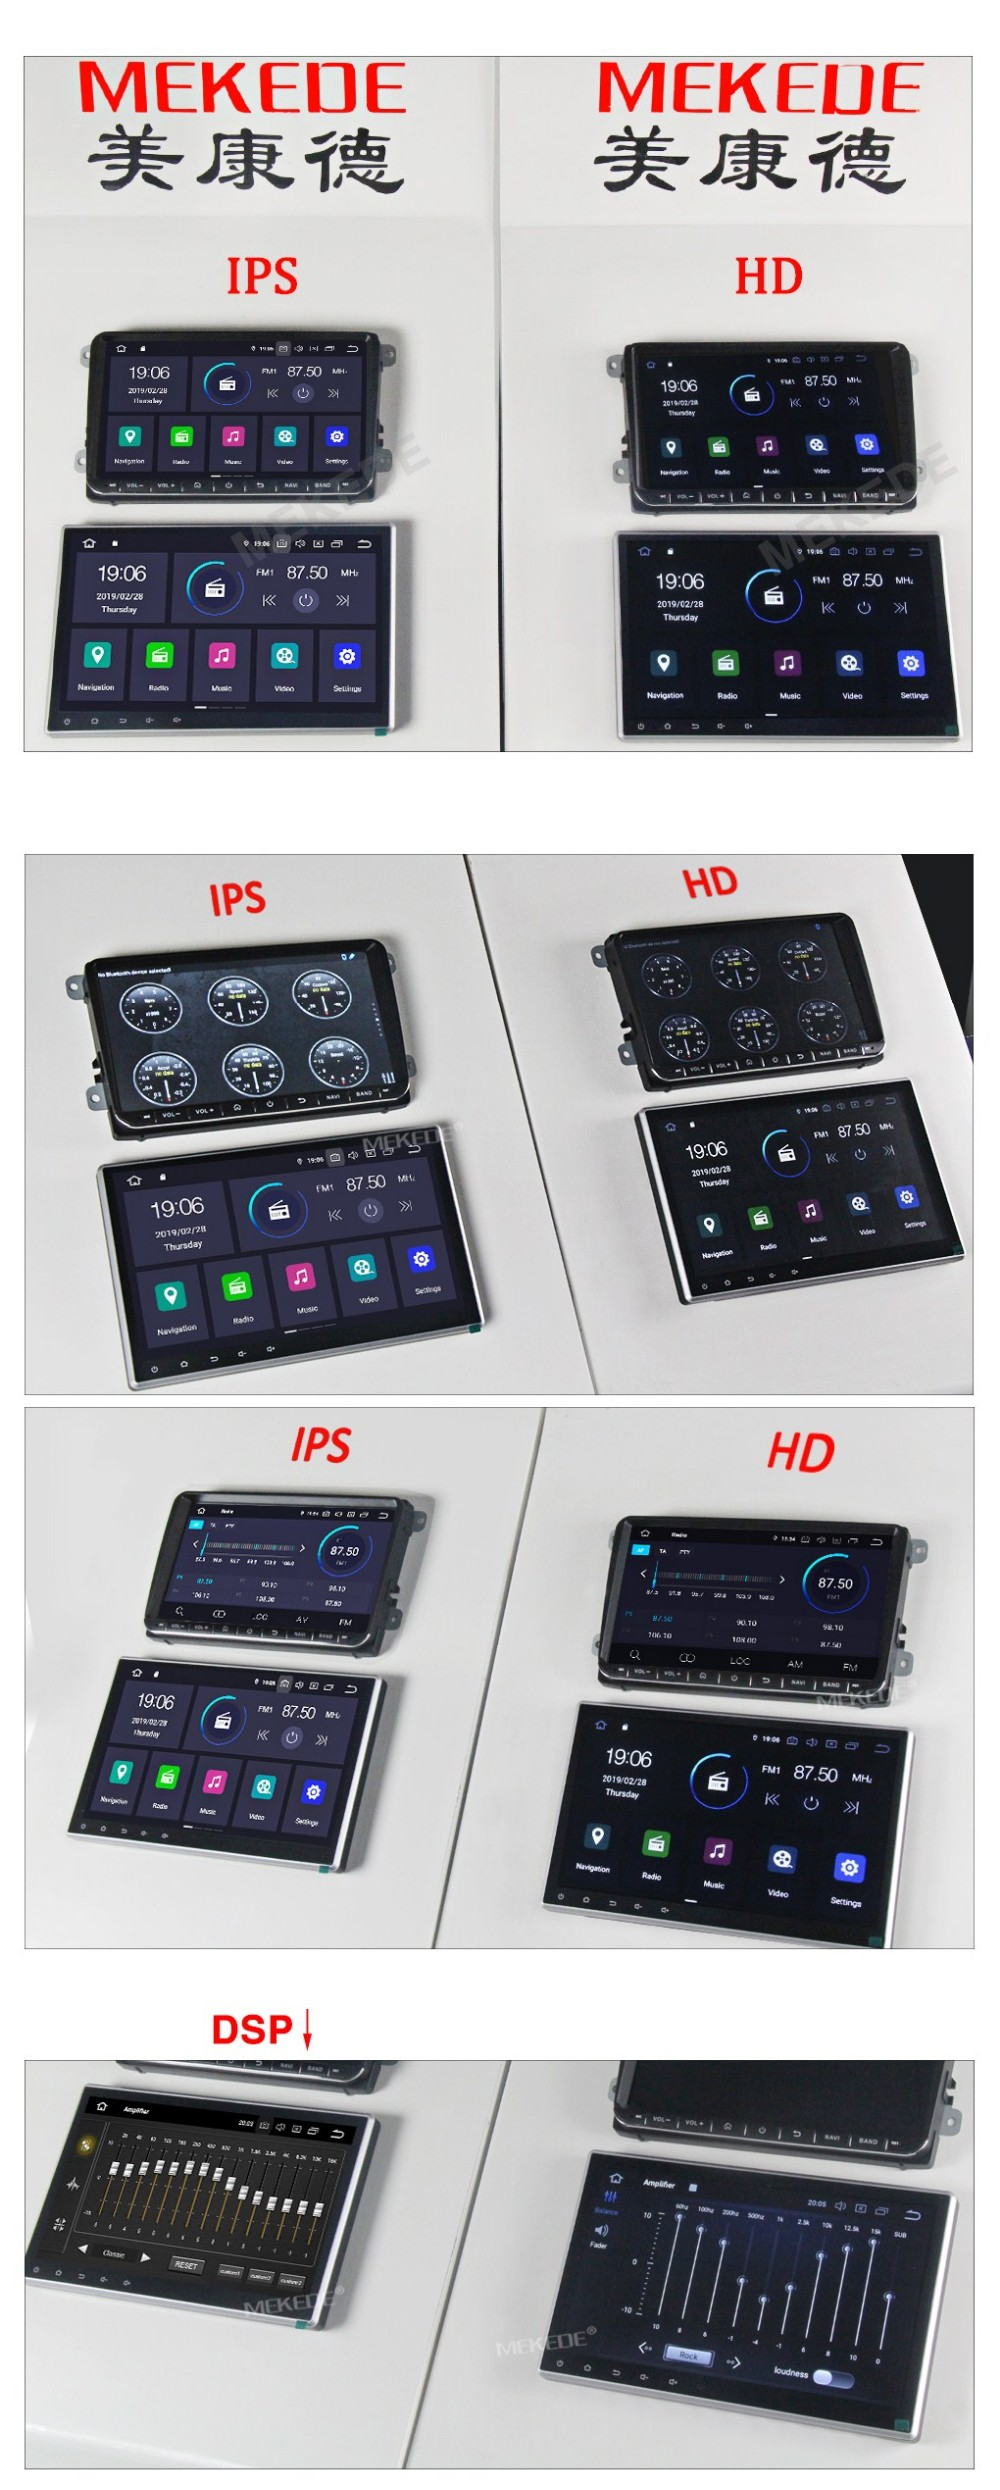 Mekede Px30 Android 9 0 With Dsp+ips Screen Car Dvd Gps Player For Bmw 3  Series E46 Mg Zt Rover 75 With 2g Ram 16g Rom - Buy Mekede 1 Din 7 Inch  Px30